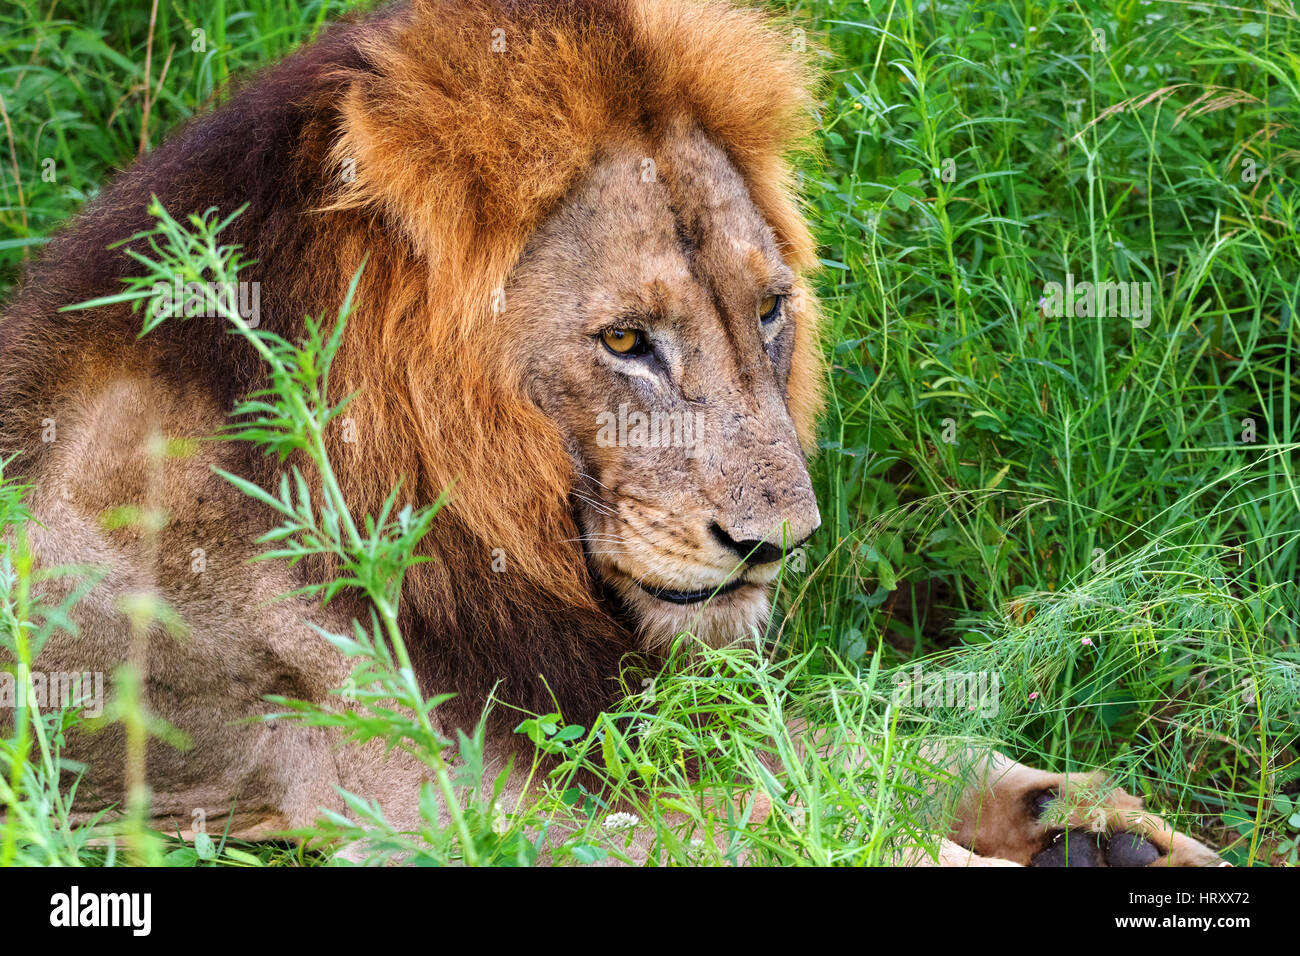 Lion male portrait - Transvaal lion (Panthera leo krugeri) also known as Southheast African lion, Kruger National - Stock Image